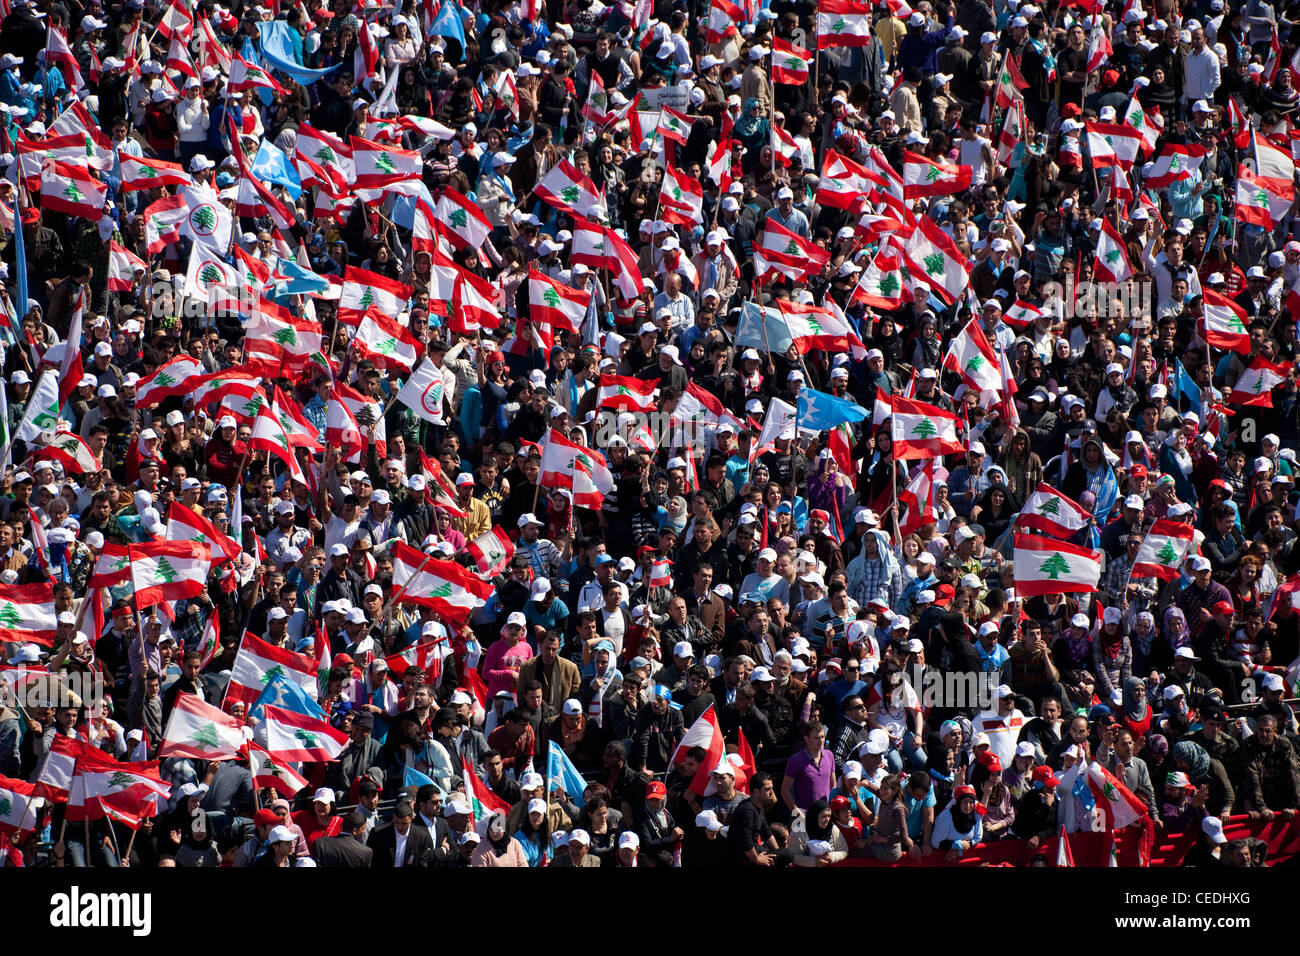 High shot of flag-waving demonstrators filling Martyrs Square at a political rally in Beirut, Lebanon. - Stock Image